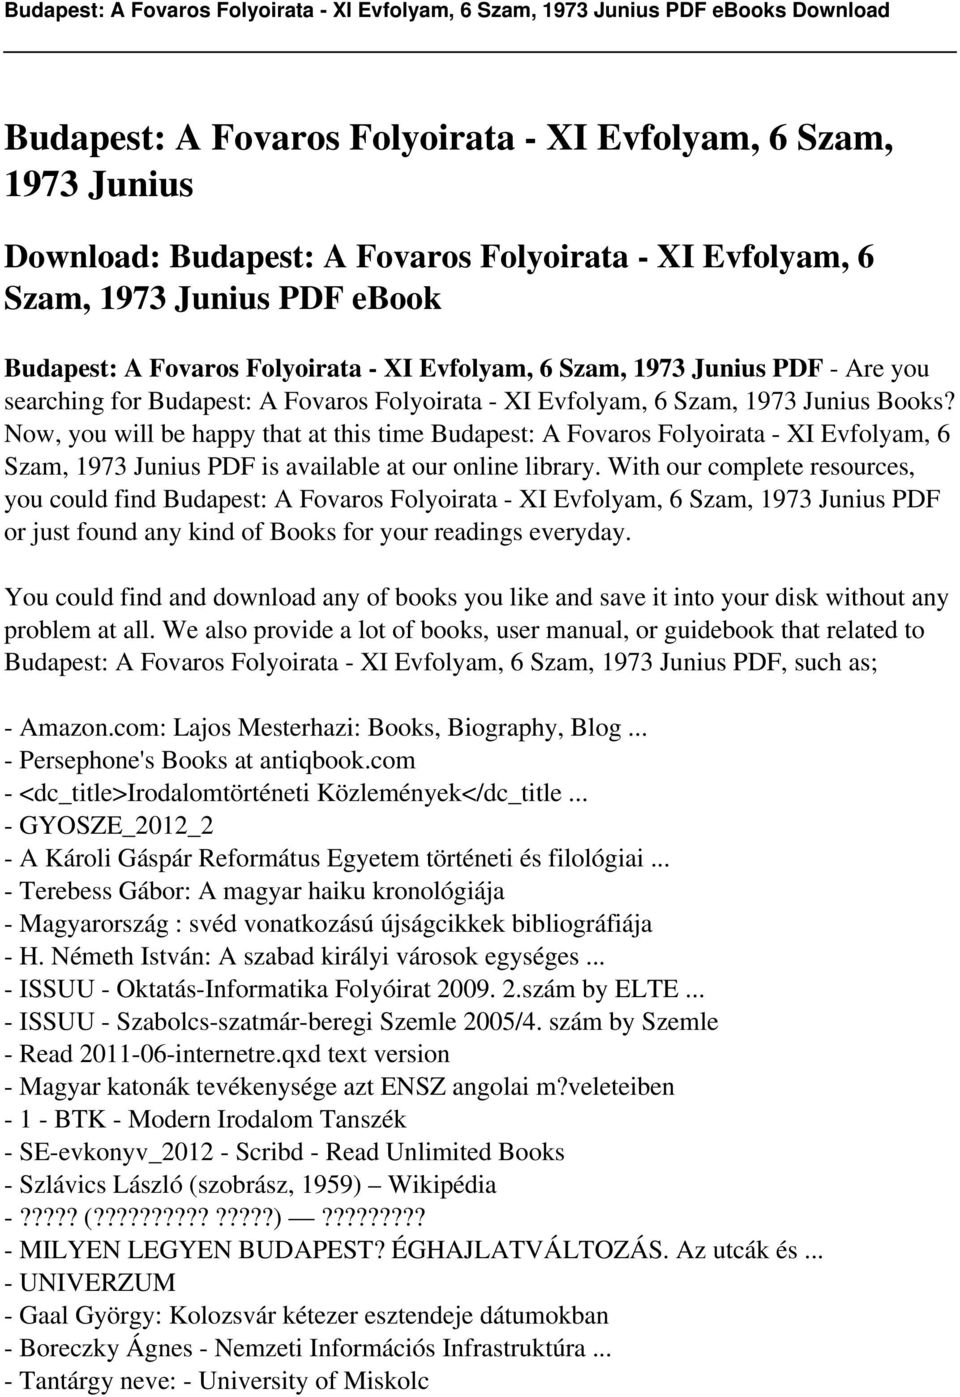 Now, you will be happy that at this time Budapest: A Fovaros Folyoirata - XI Evfolyam, 6 Szam, 1973 Junius PDF is available at our online library.